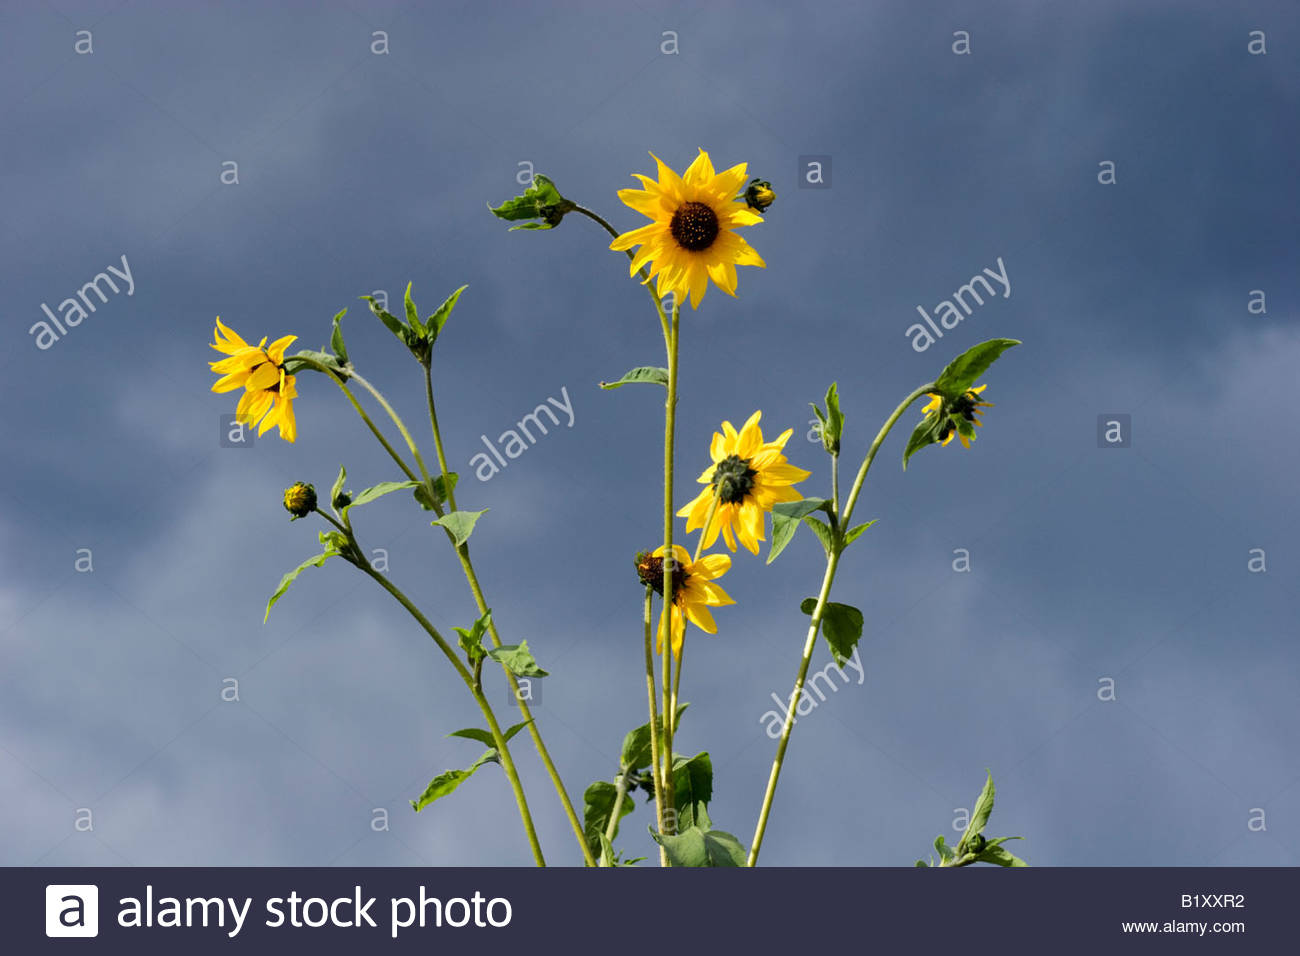 Sunflowers and Thunderstorm Clouds Southern California - Stock Image